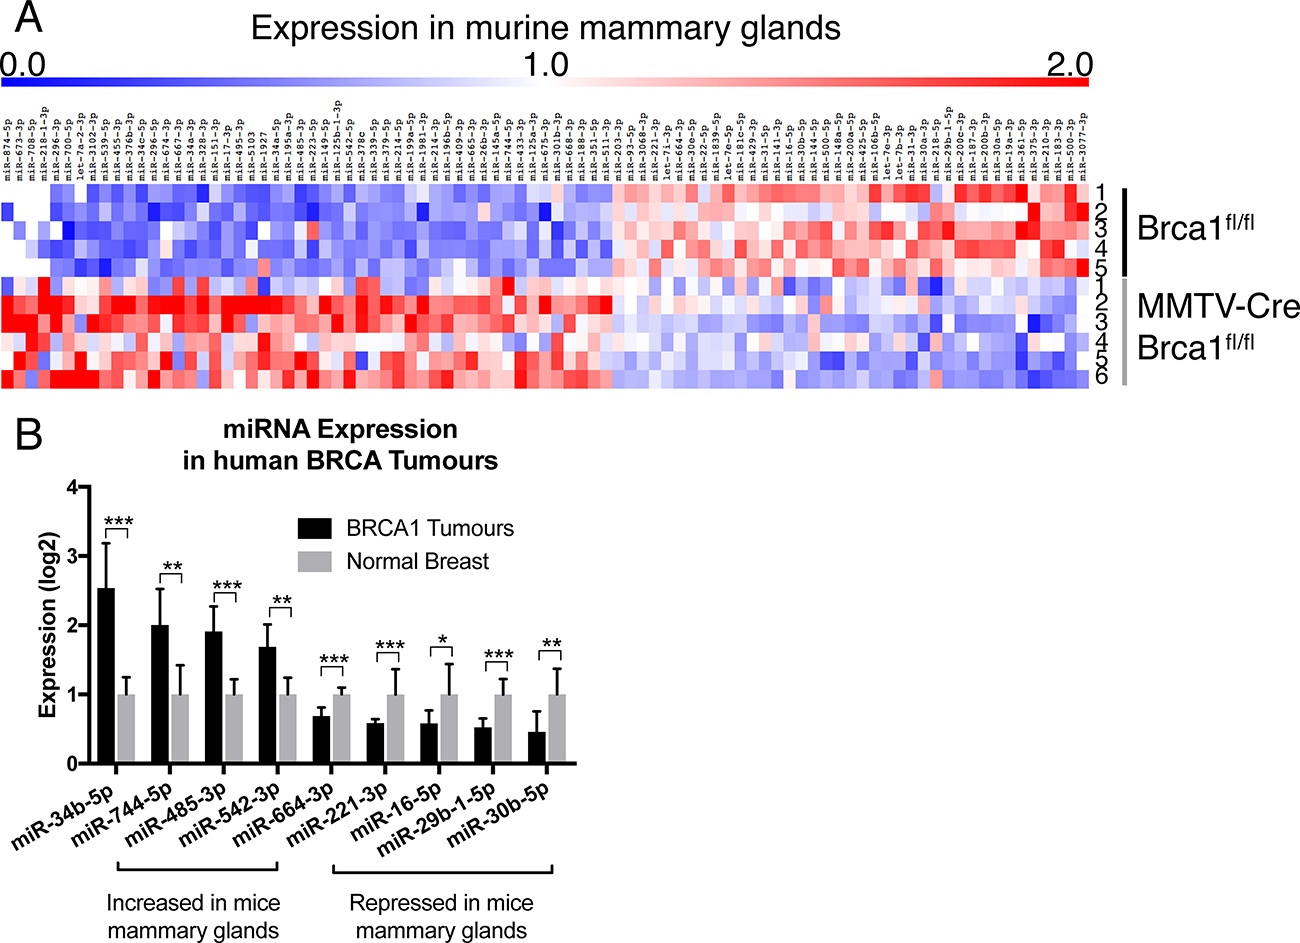 Brca1 deregulates miRNA expression in the mammary gland.